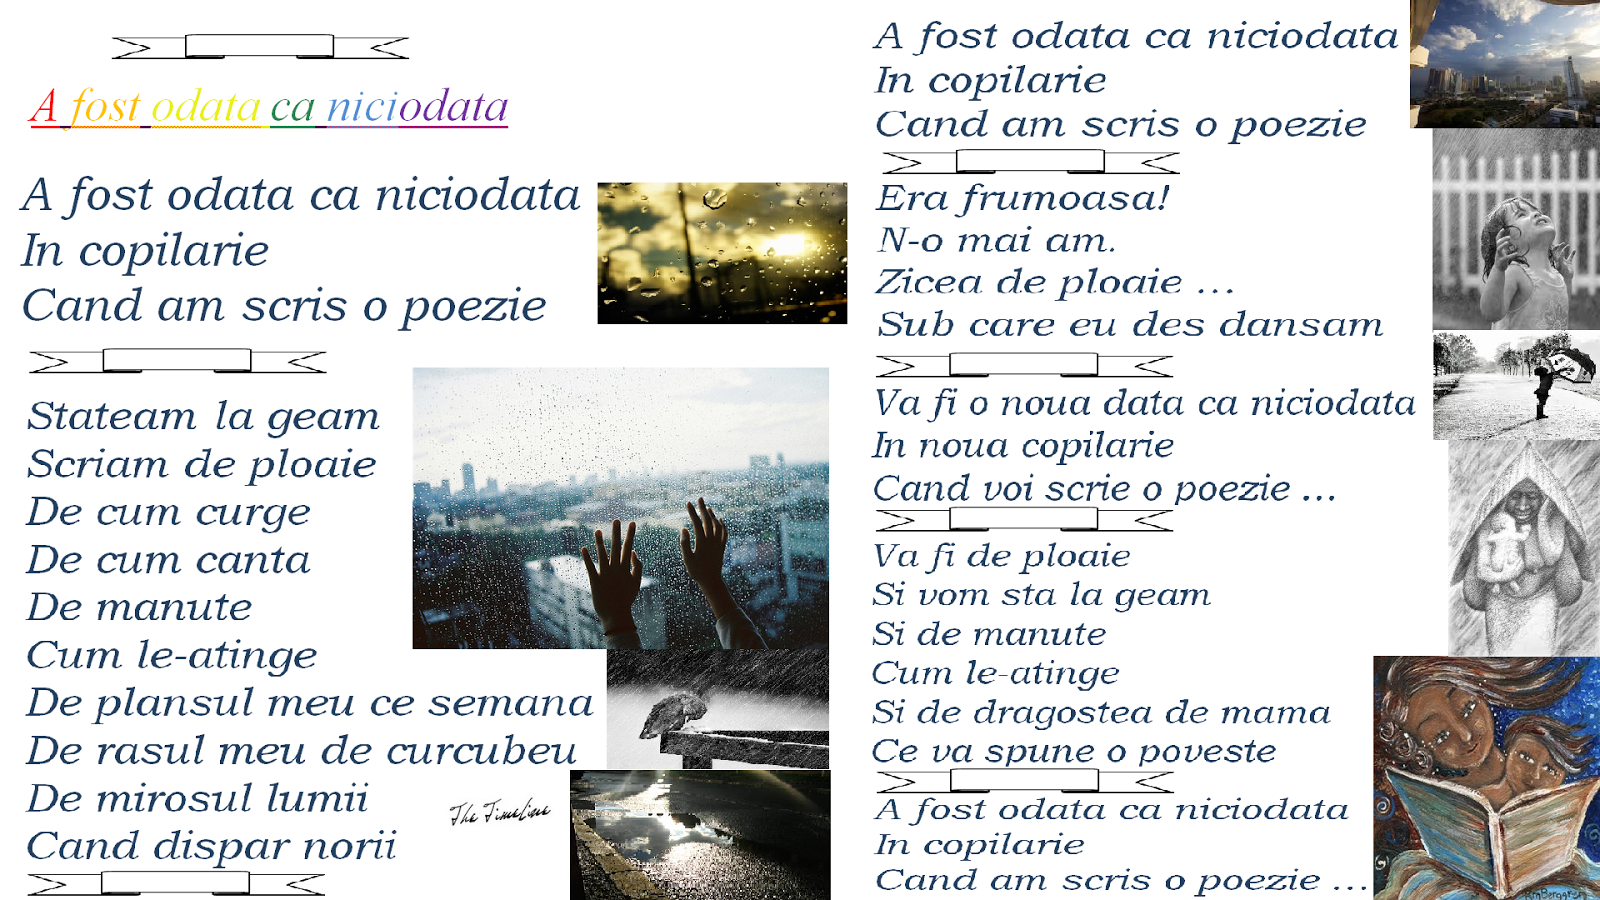 life blog writer poetry child wisdom art music passion hobby sharing reader copil citit poezii scris pasiune muzica bucurie joy intelepciune adevar Credinta Faith parinti mama tata parents mother mom dad father lover iubit iubita love iubire lumina light spirit soul suflet cugetari filozofie filosofie philosophy thinking ponder human humanity umanitate om femeie barbat woman man Wrinkles on my Timeline blog writer culture music hobby sharing life Faith